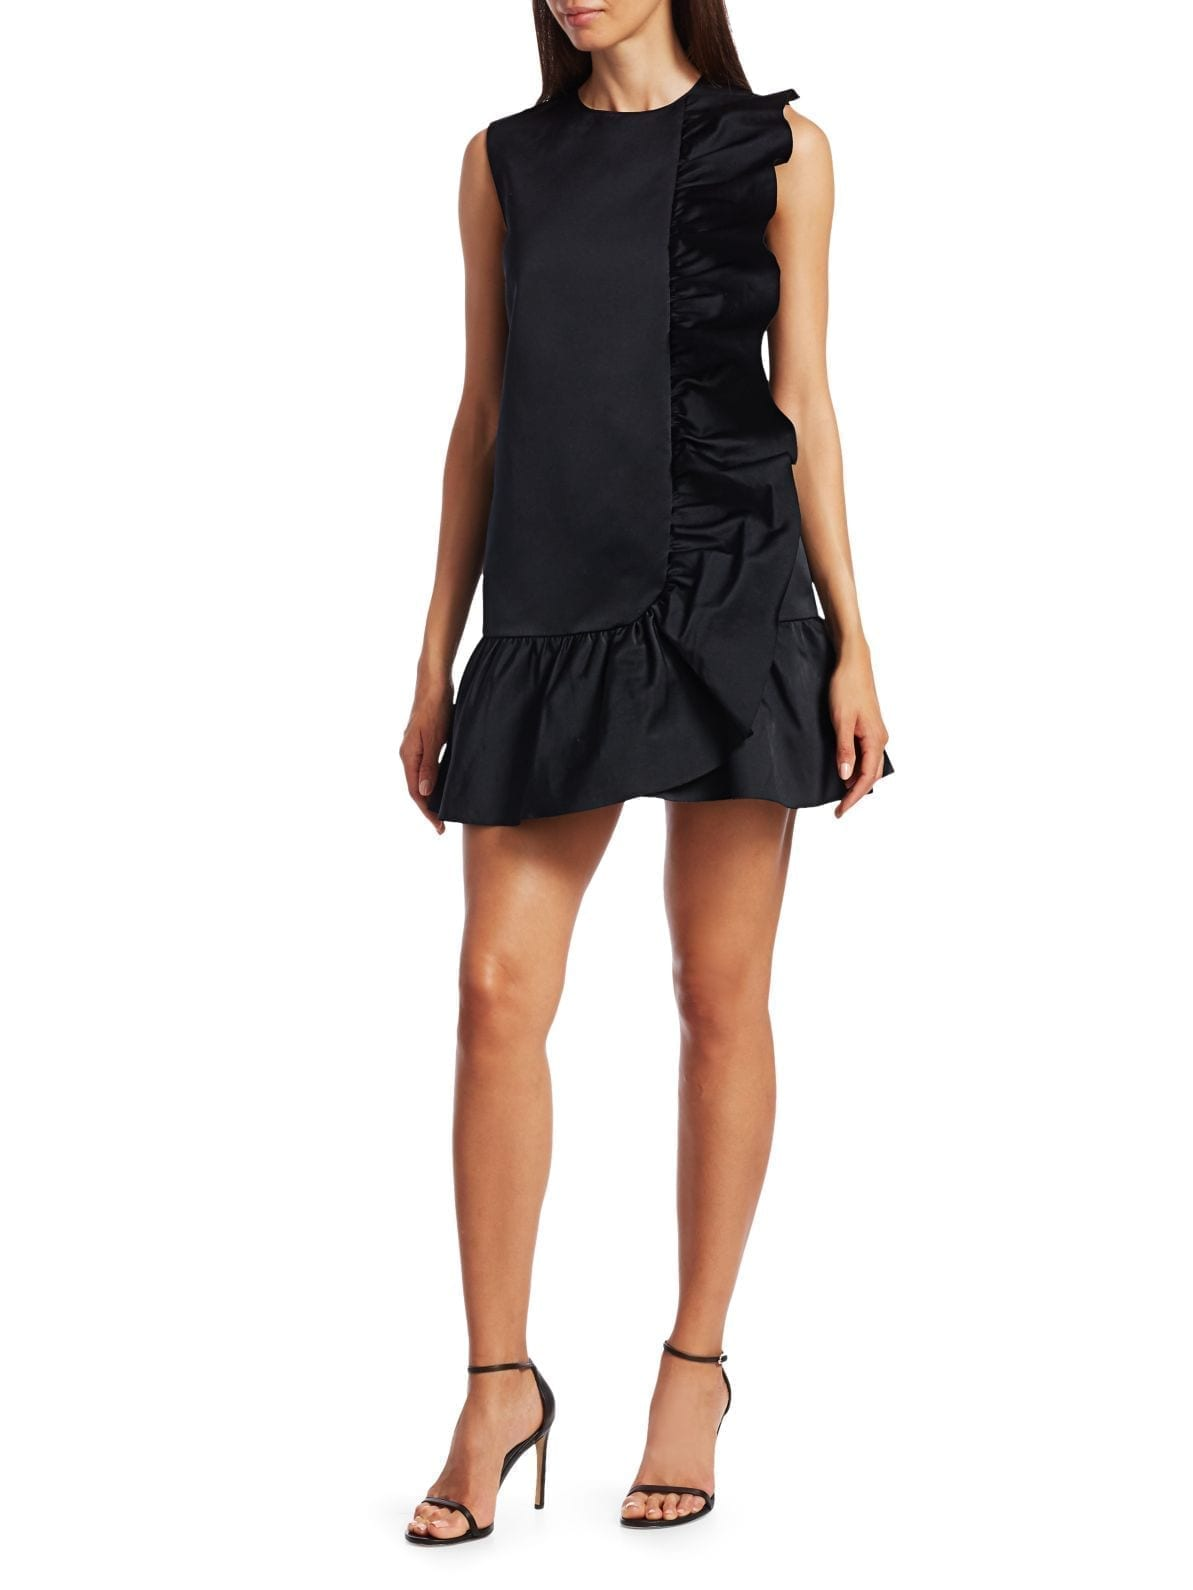 REDVALENTINO Ruffle Trim Shift Dress